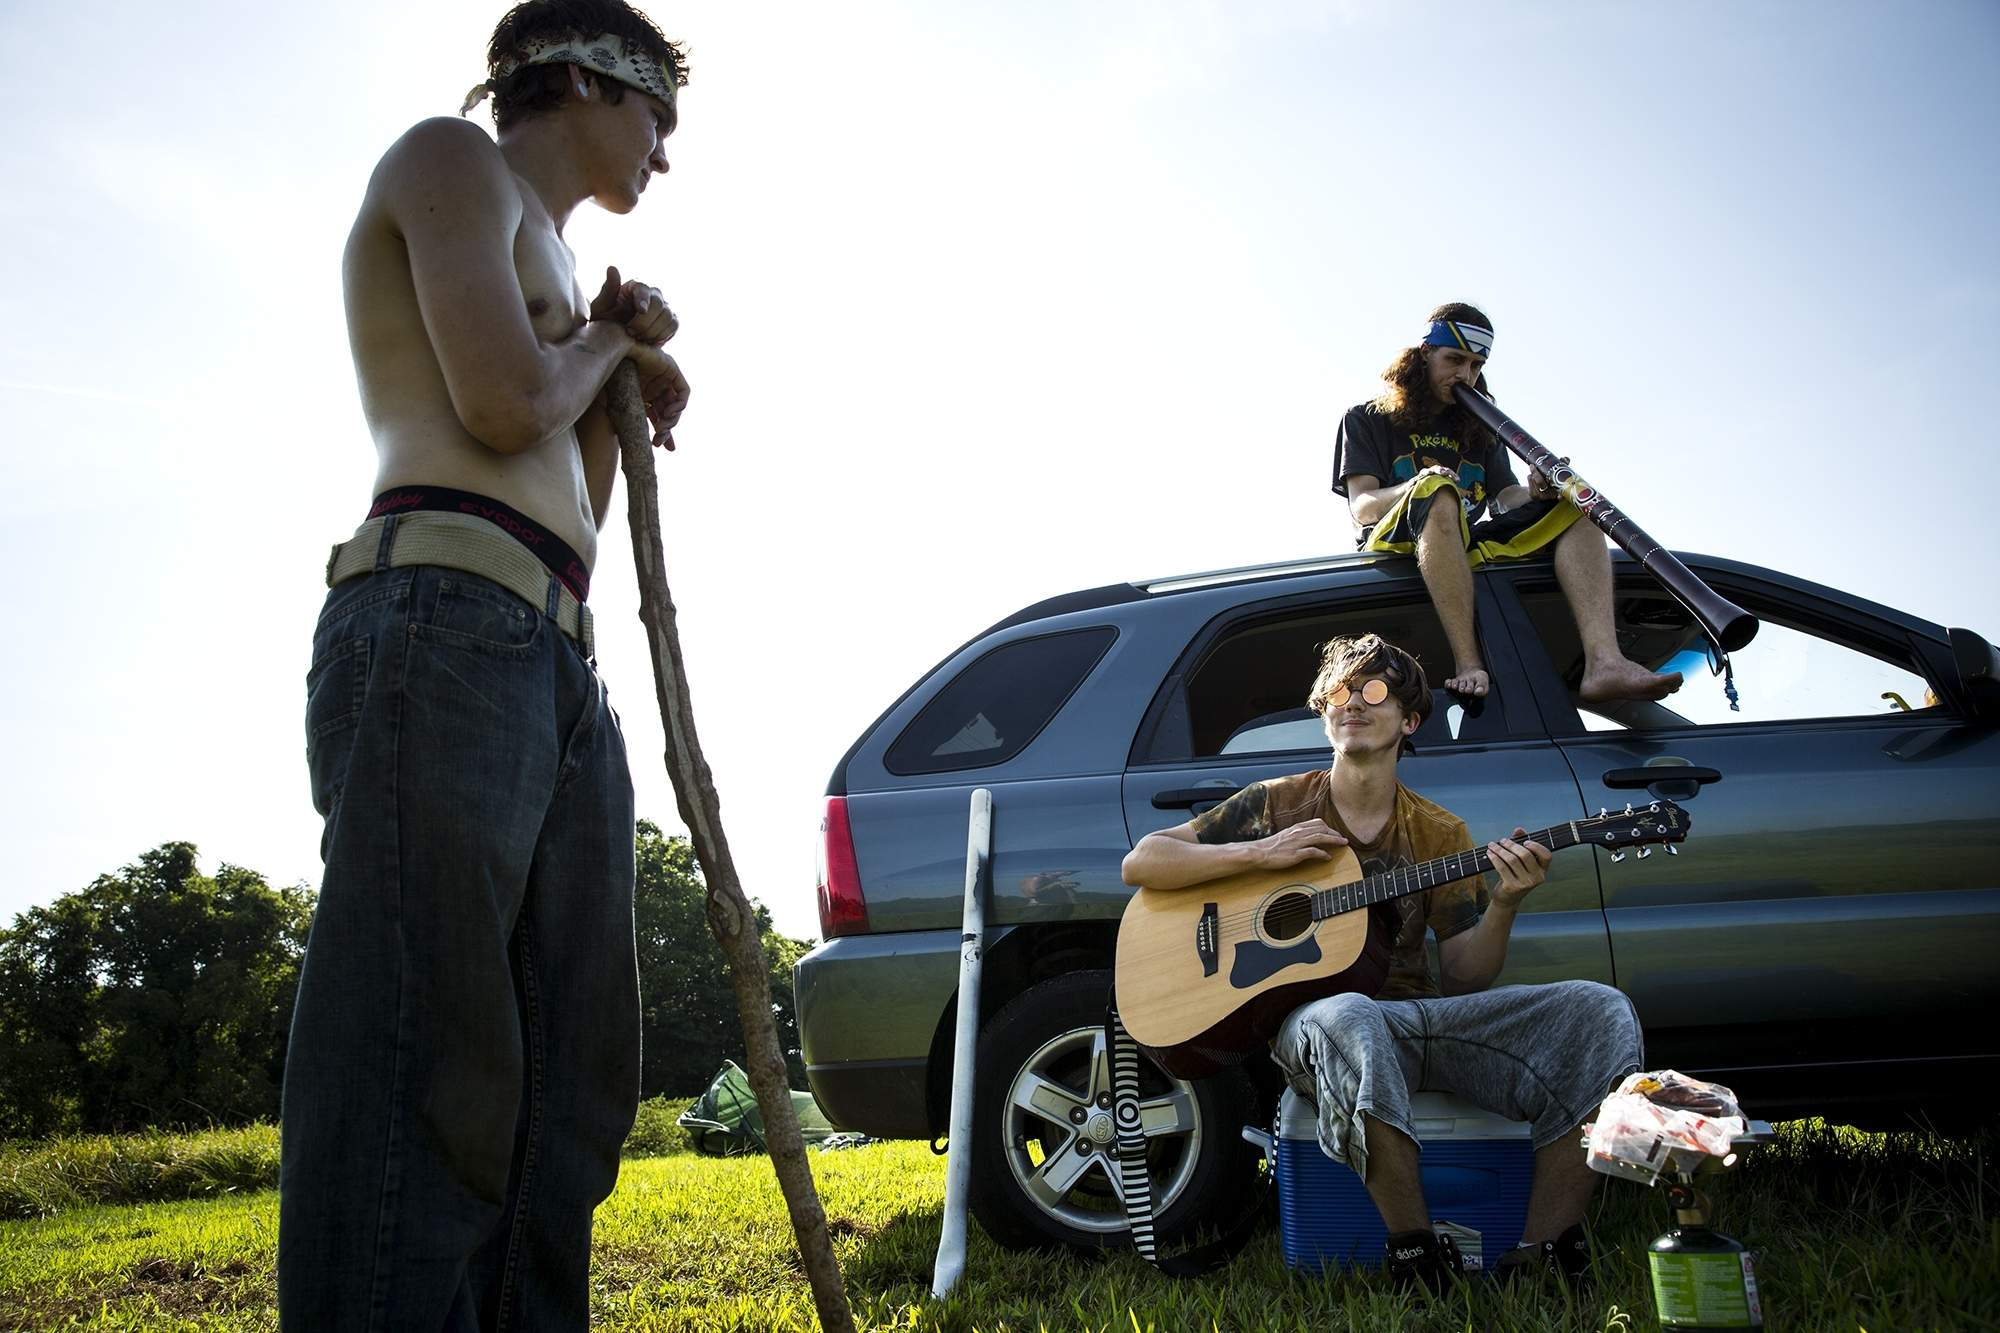 Thomas Kasper, left, Kyle Mohr and his brother Braden, relax while waiting for the solar eclipse in Giant City State Park Monday, Aug. 21, 2017 in Carbondale, Ill. The three, and another friend, drove overnight from Merrill, Wis., arriving at 1 a.m. [Rich Saal/The State Journal-Register]